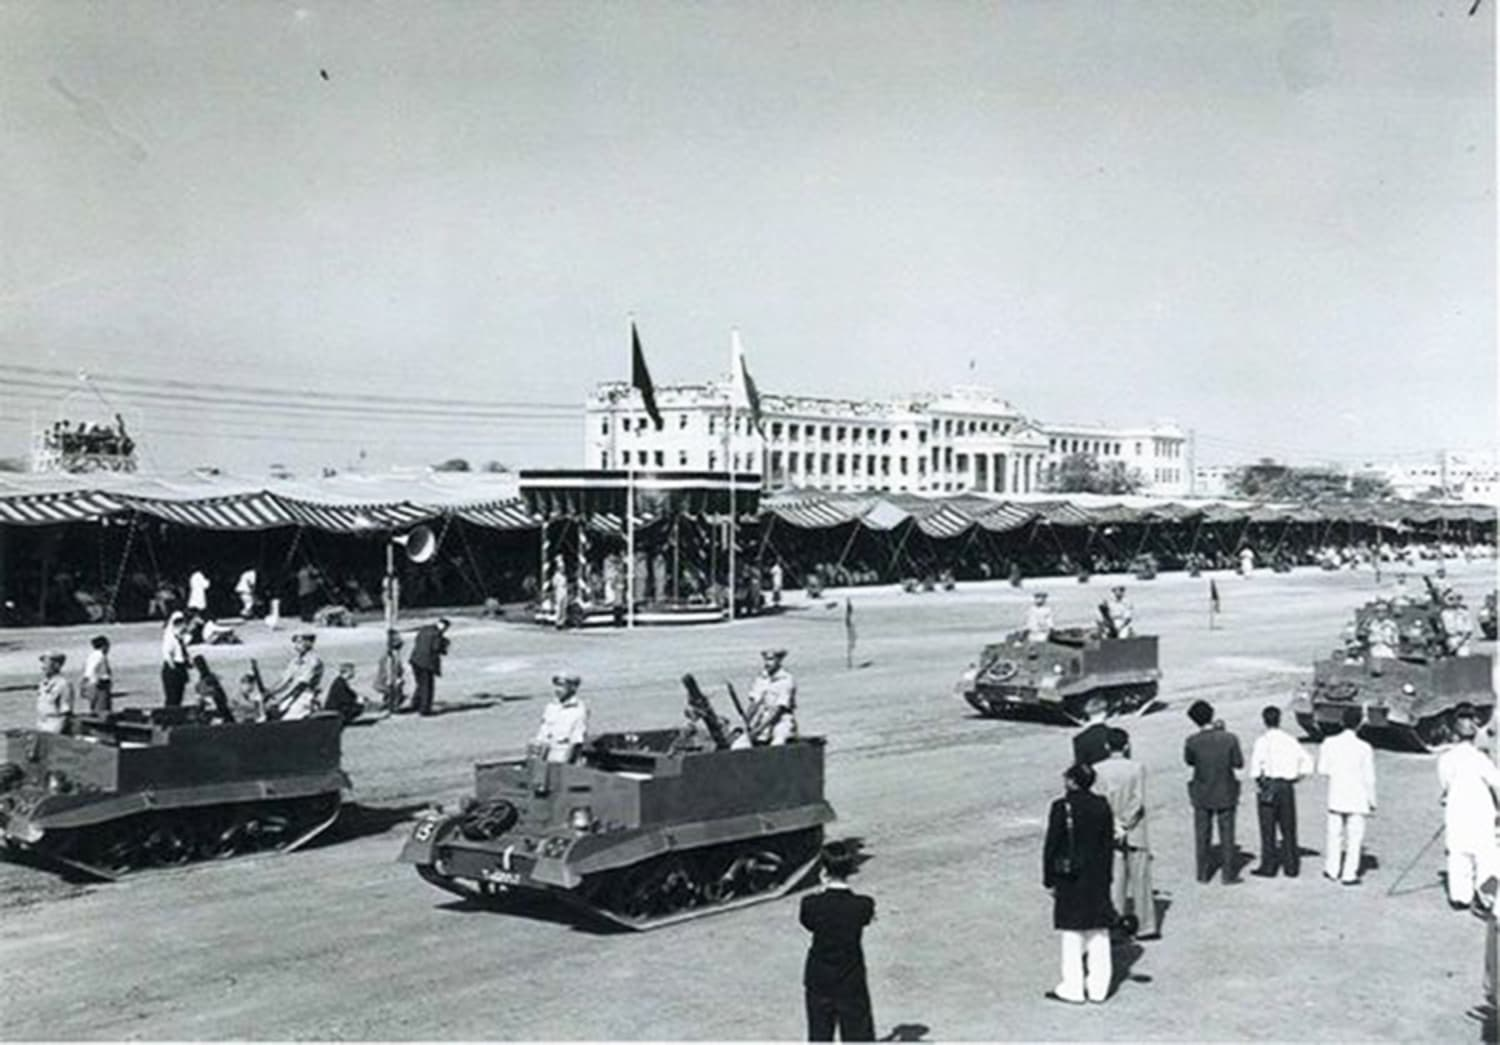 Pakistan's first Republic Day parade. In 1956, Pakistan became a republic. The occasion was marked by a parade held on March 23, 1956 in Pakistan's then-capital, Karachi.